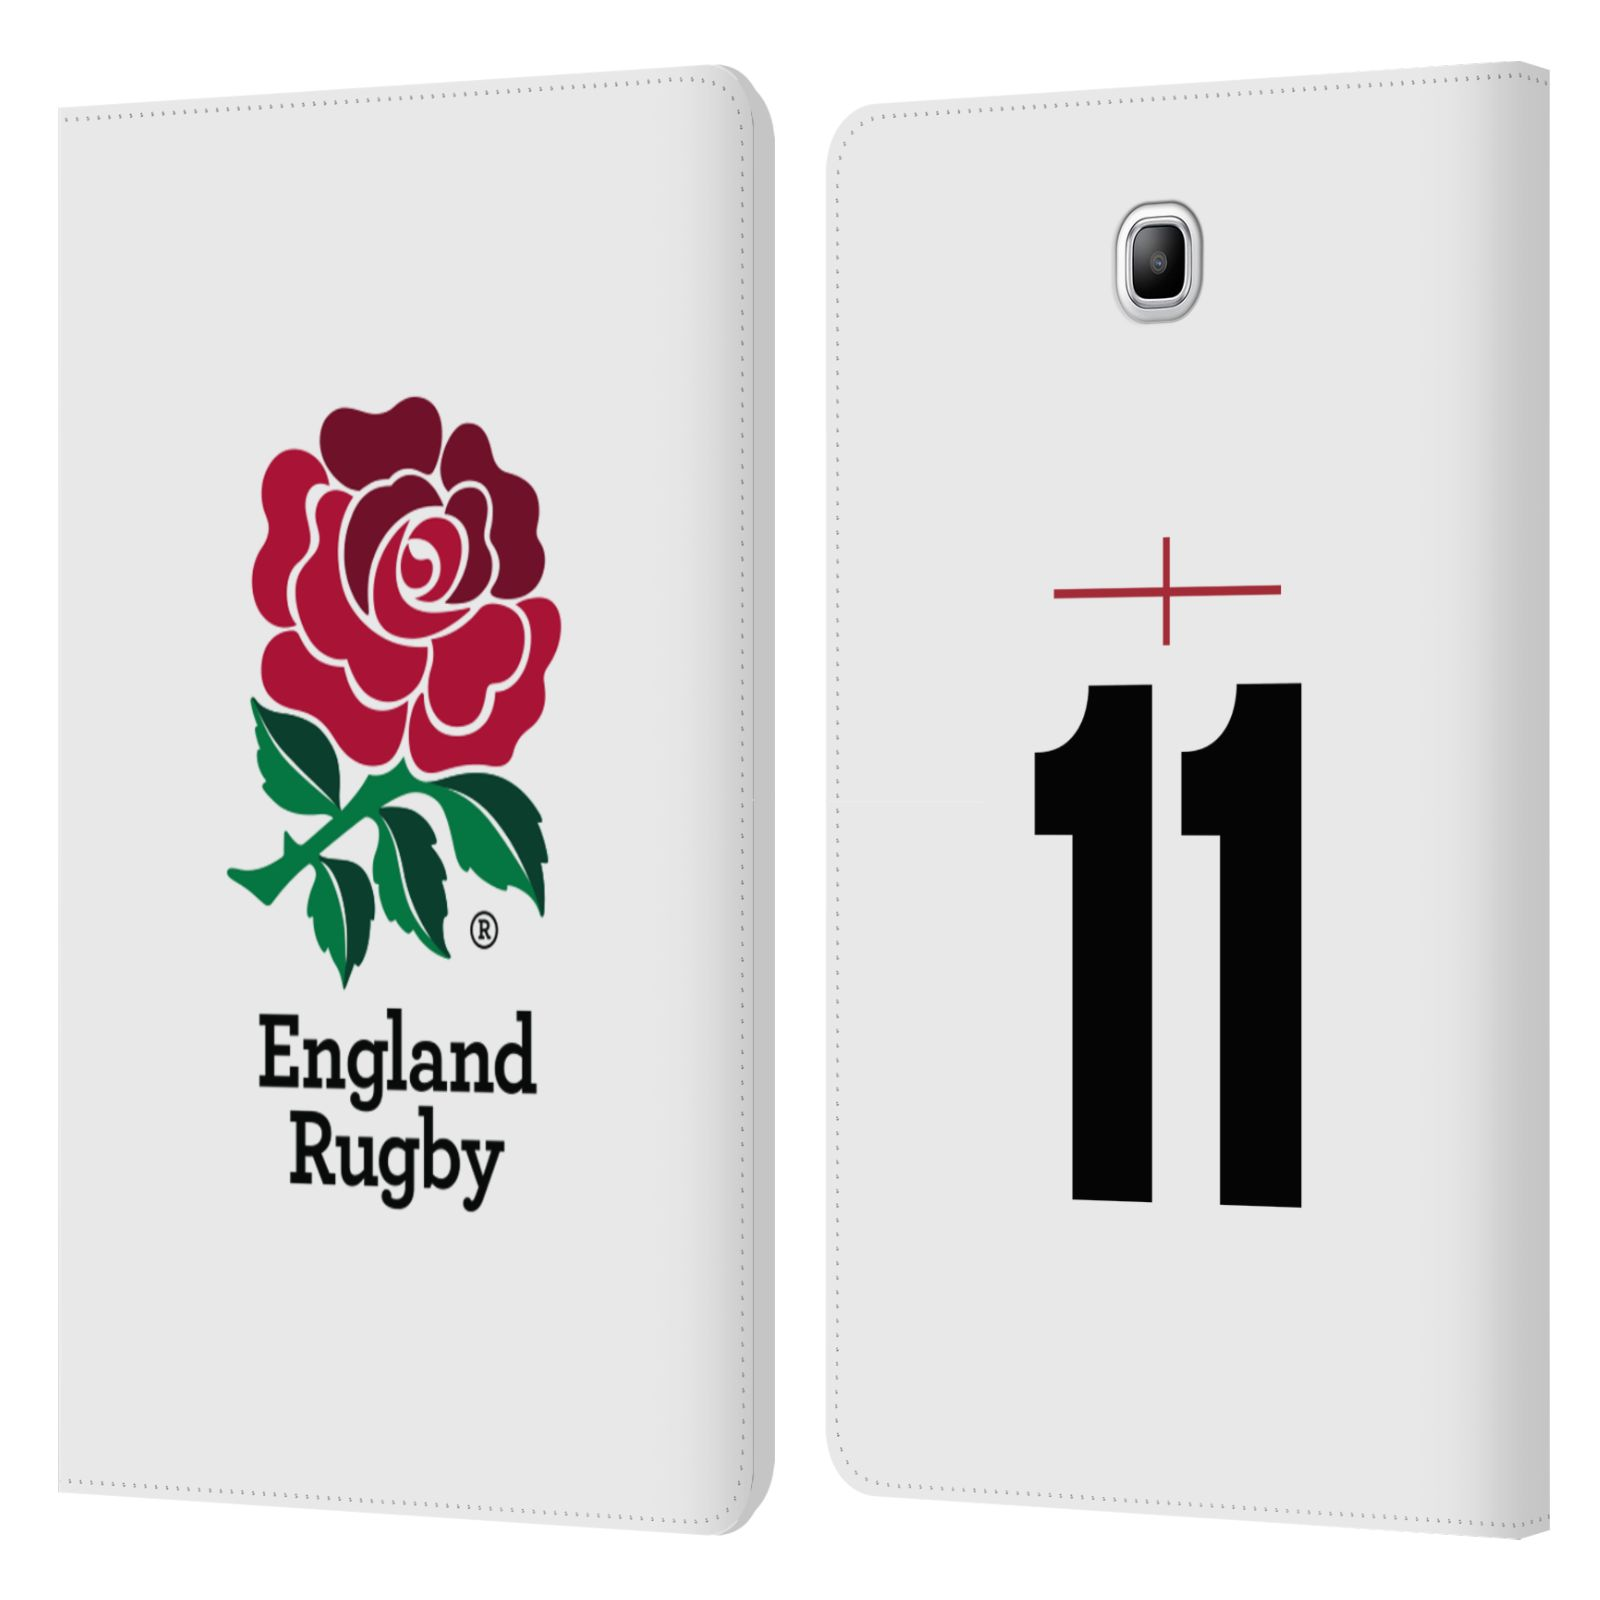 ENGLAND-RUGBY-UNION-2016-17-HOME-KIT-LEATHER-BOOK-CASE-FOR-SAMSUNG-TABLETS